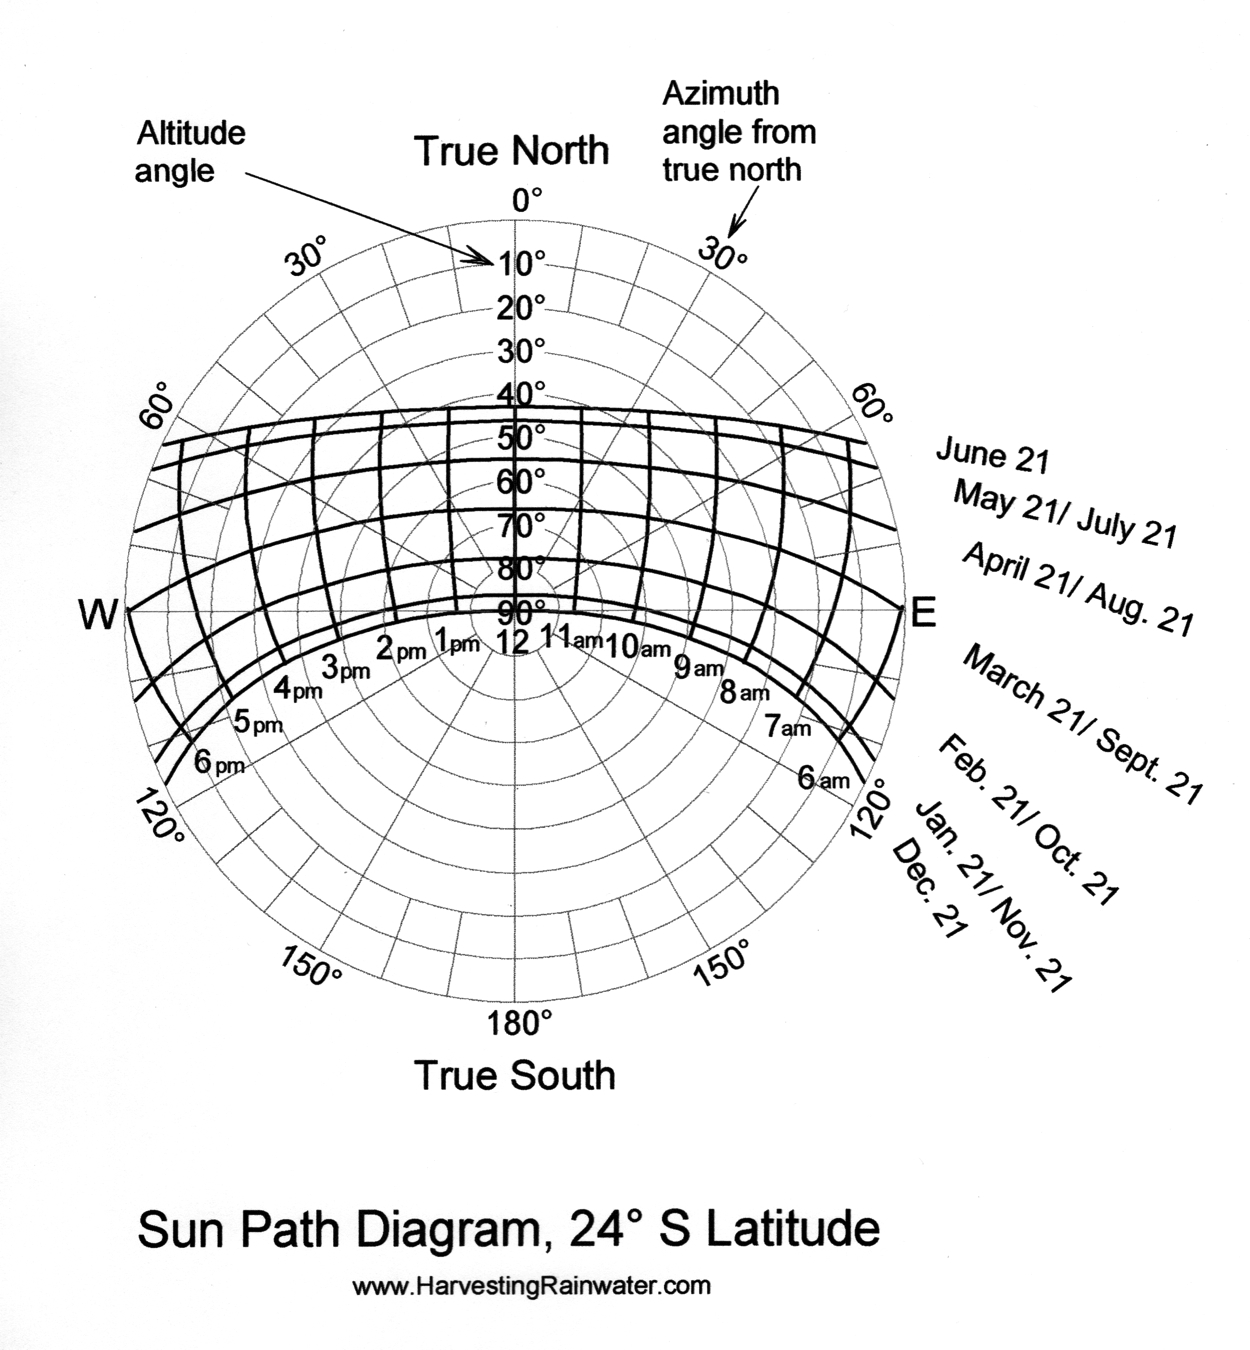 Sun Path Diagram 24o S Latitude